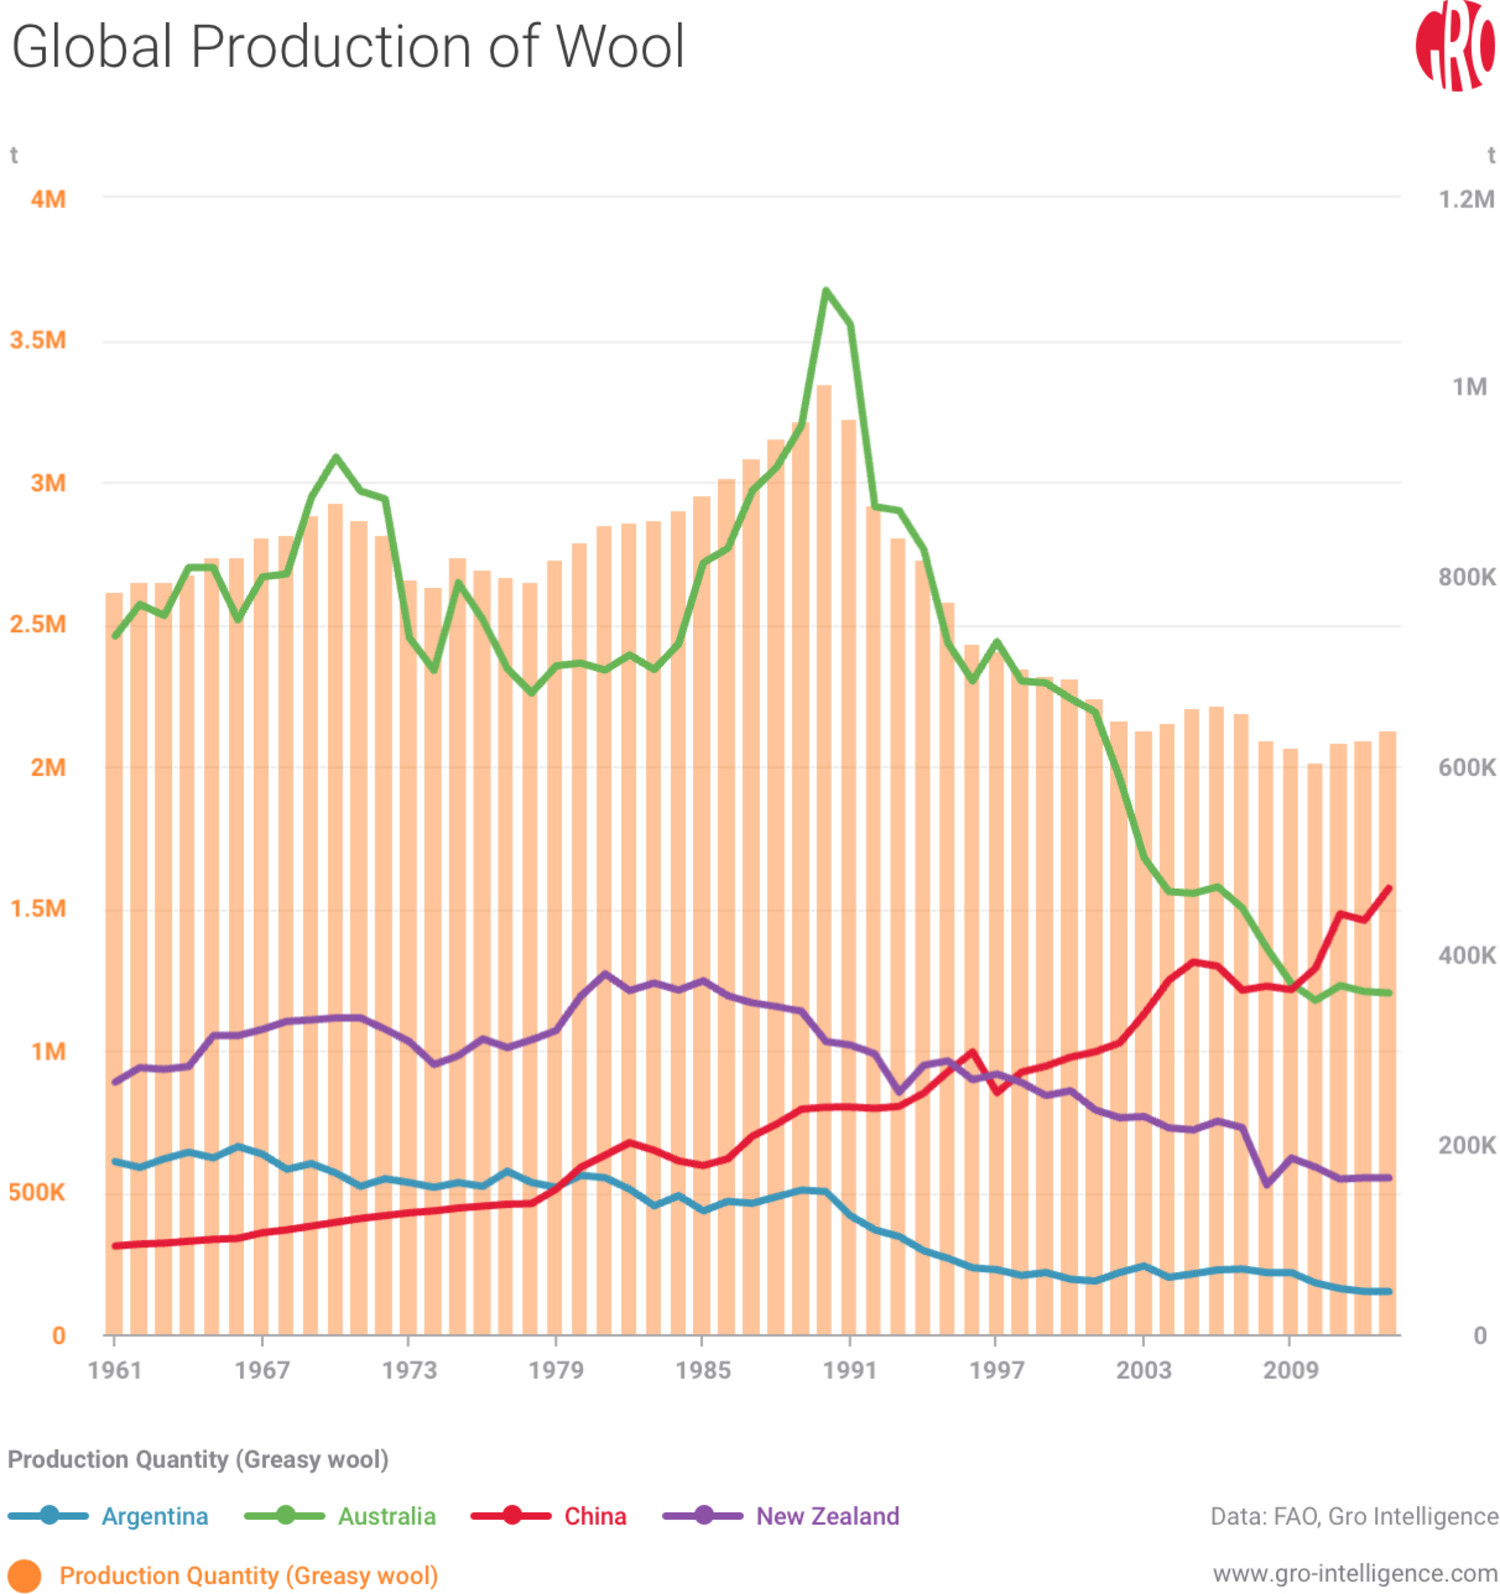 Global Production of Wool